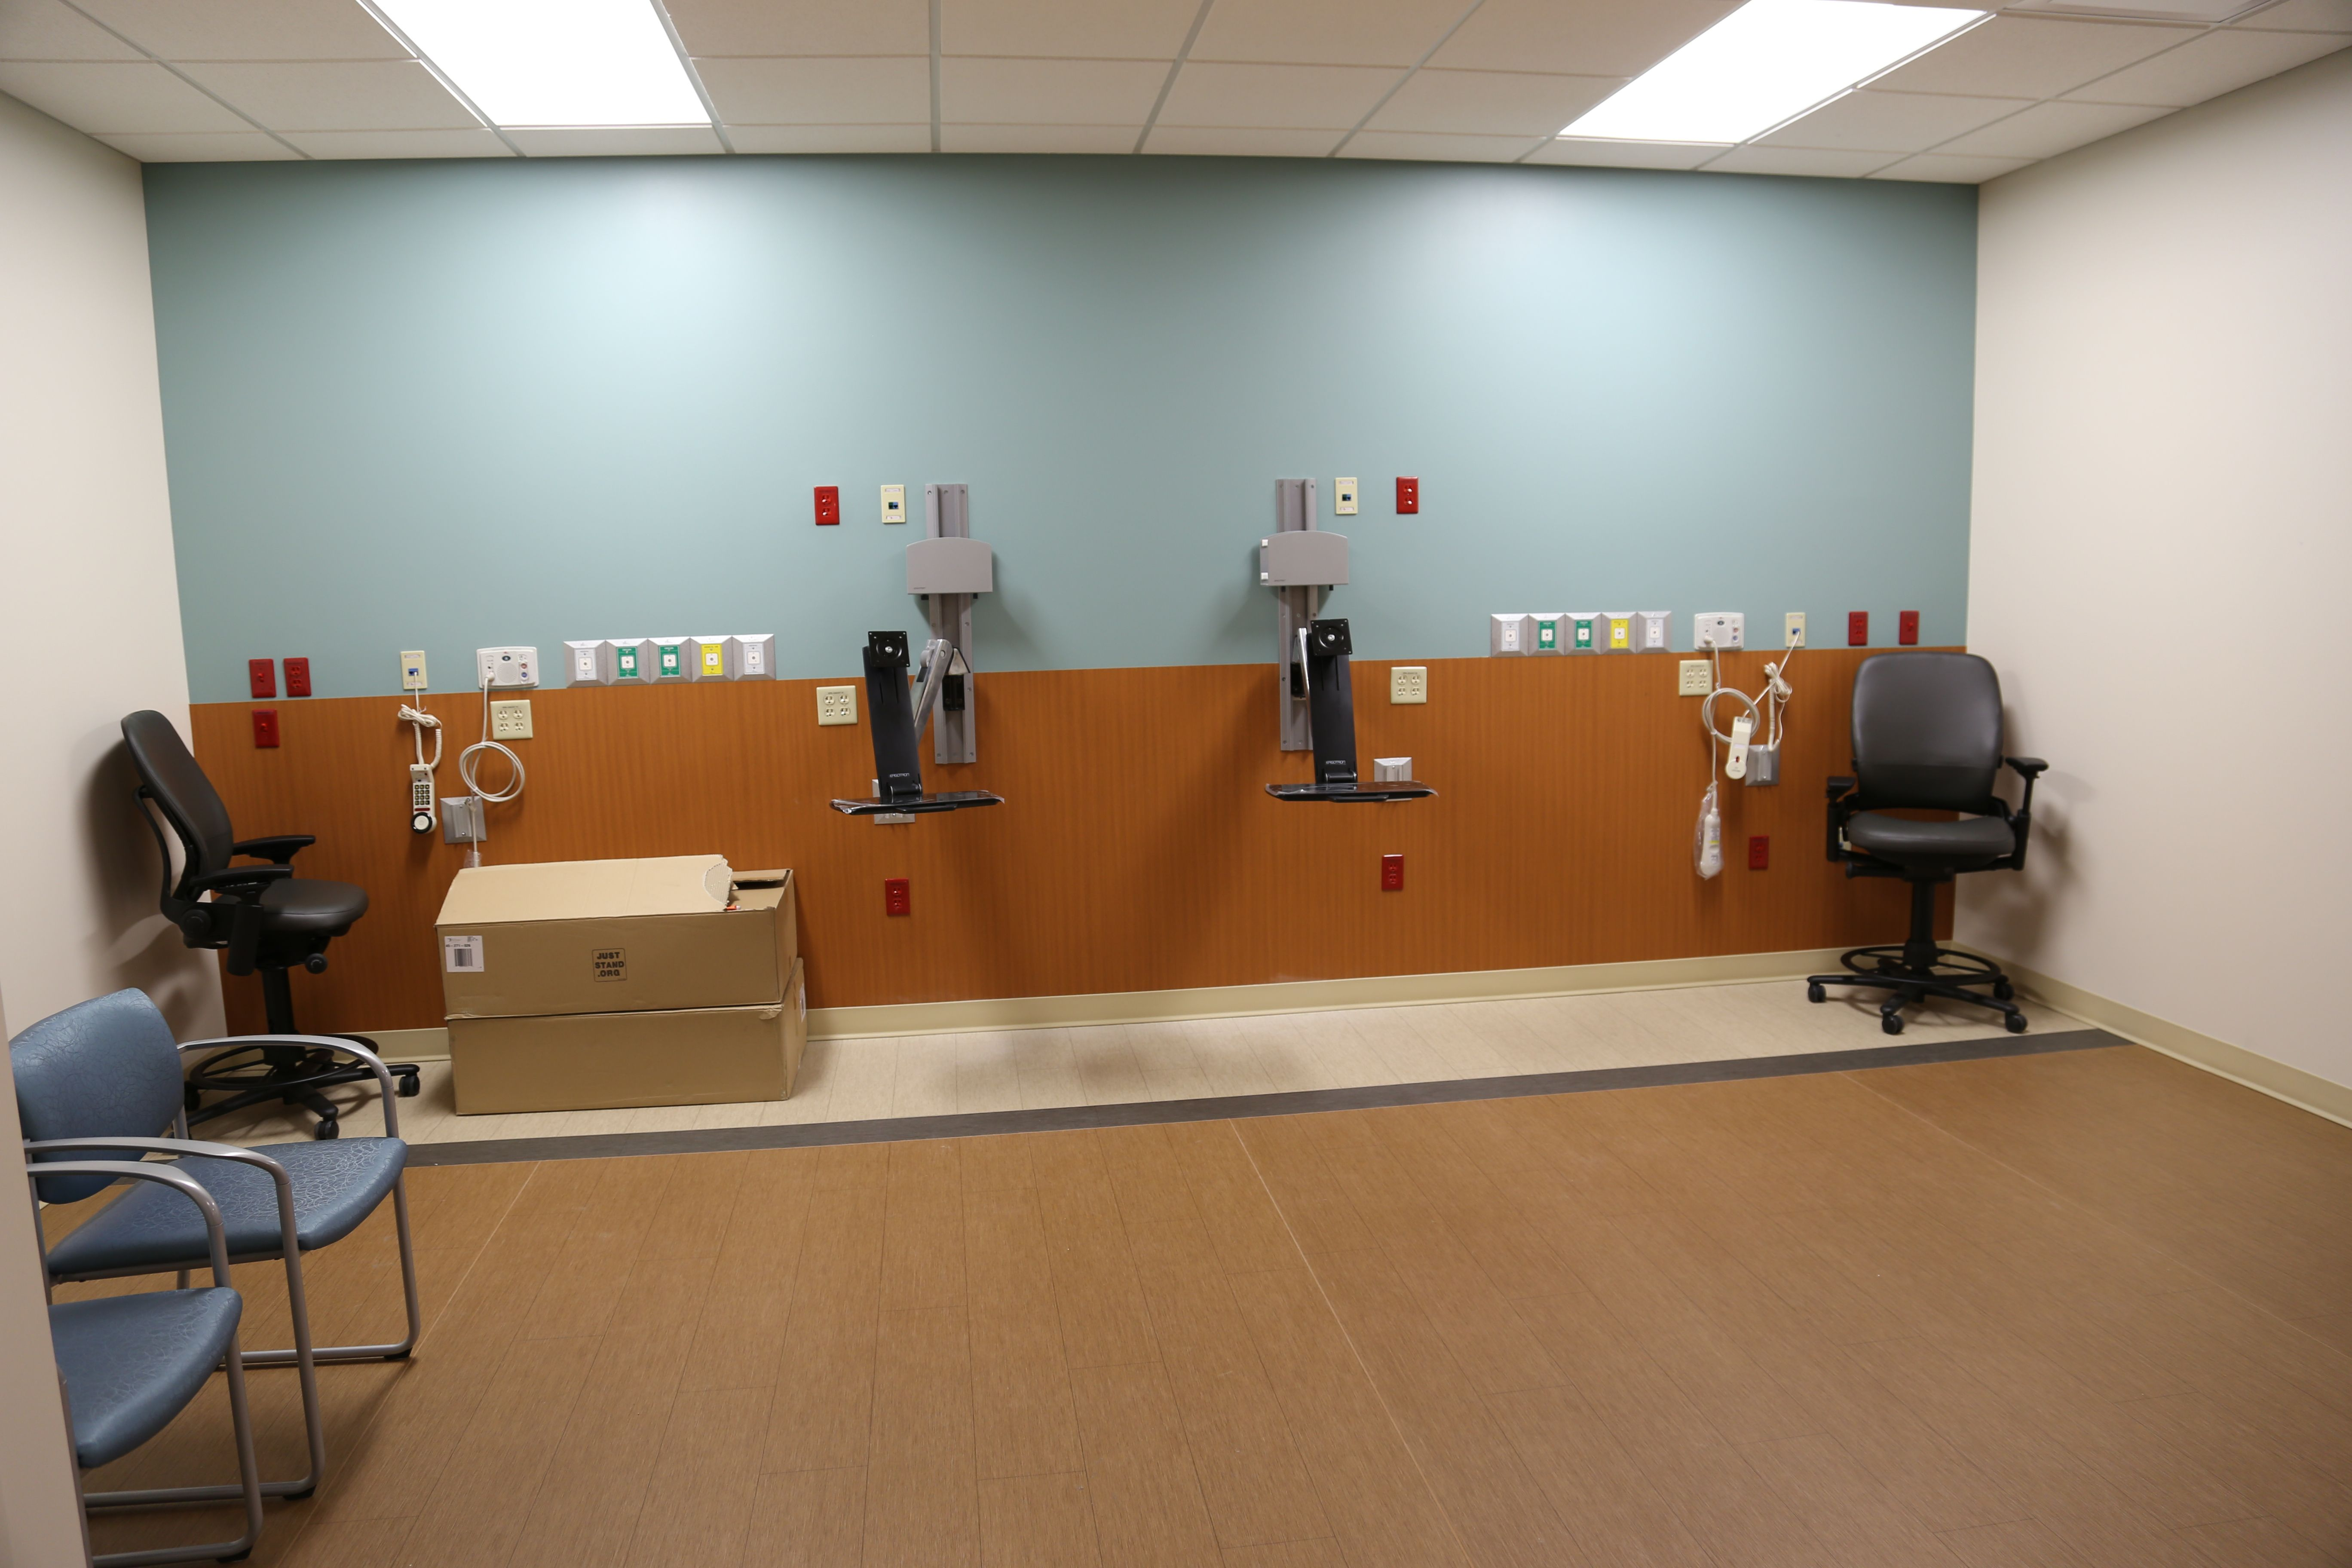 Inwall gases in PACU Bays at Mayo Clinic Health System